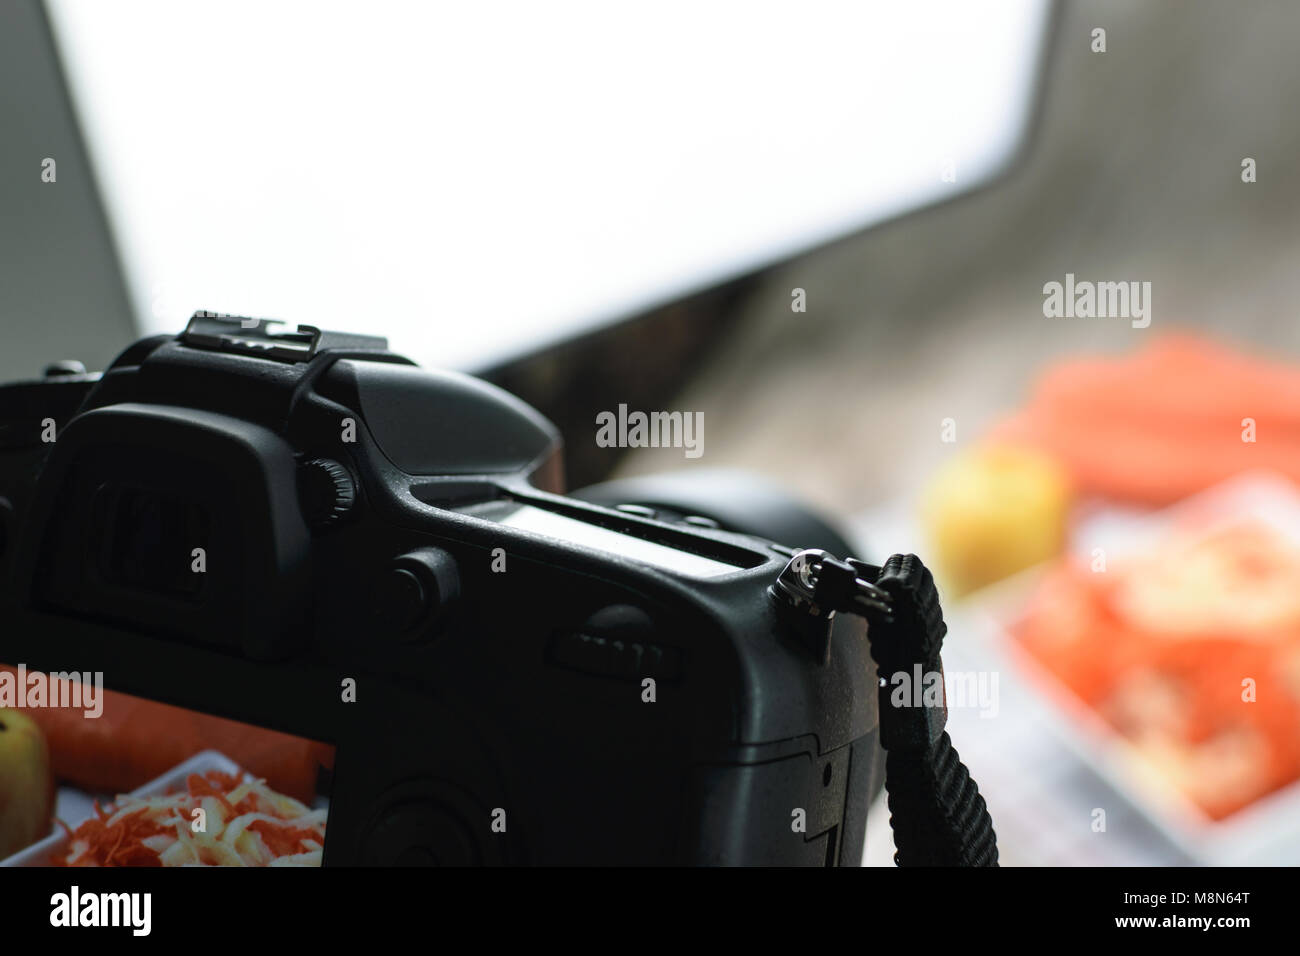 Concept image  -  rear view of DSLR camera making a food photography in the photo studio - Stock Image